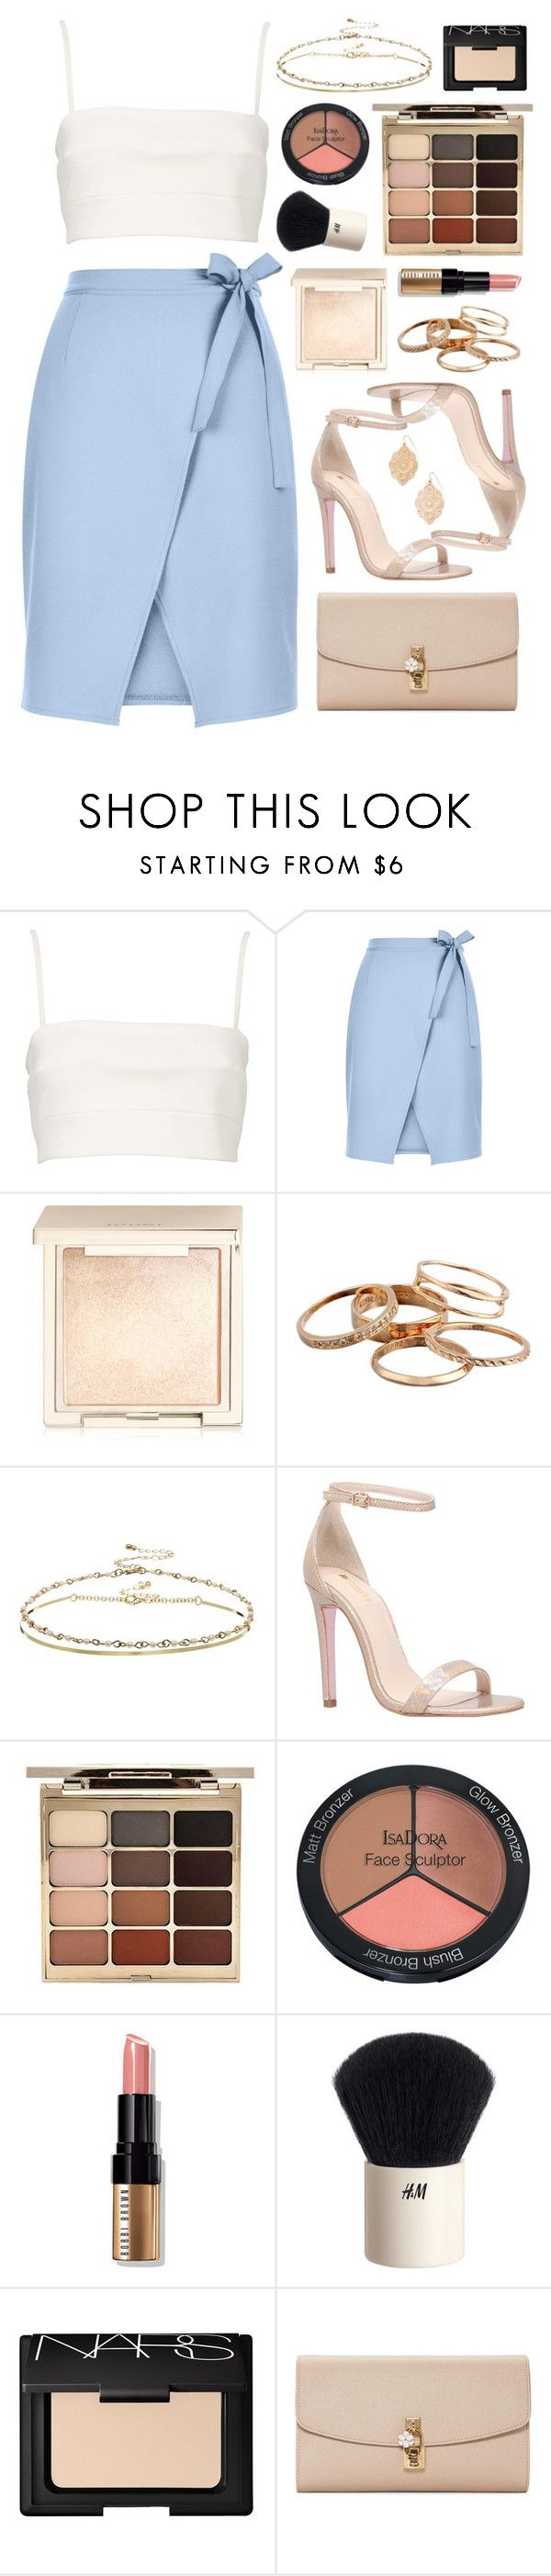 """Carvela Gatsby"" by sophiehackett ❤ liked on Polyvore featuring Witchery, New Look, Jouer, Kendra Scott, ASOS, Carvela, Stila, Isadora, Bobbi Brown Cosmetics and H&M"